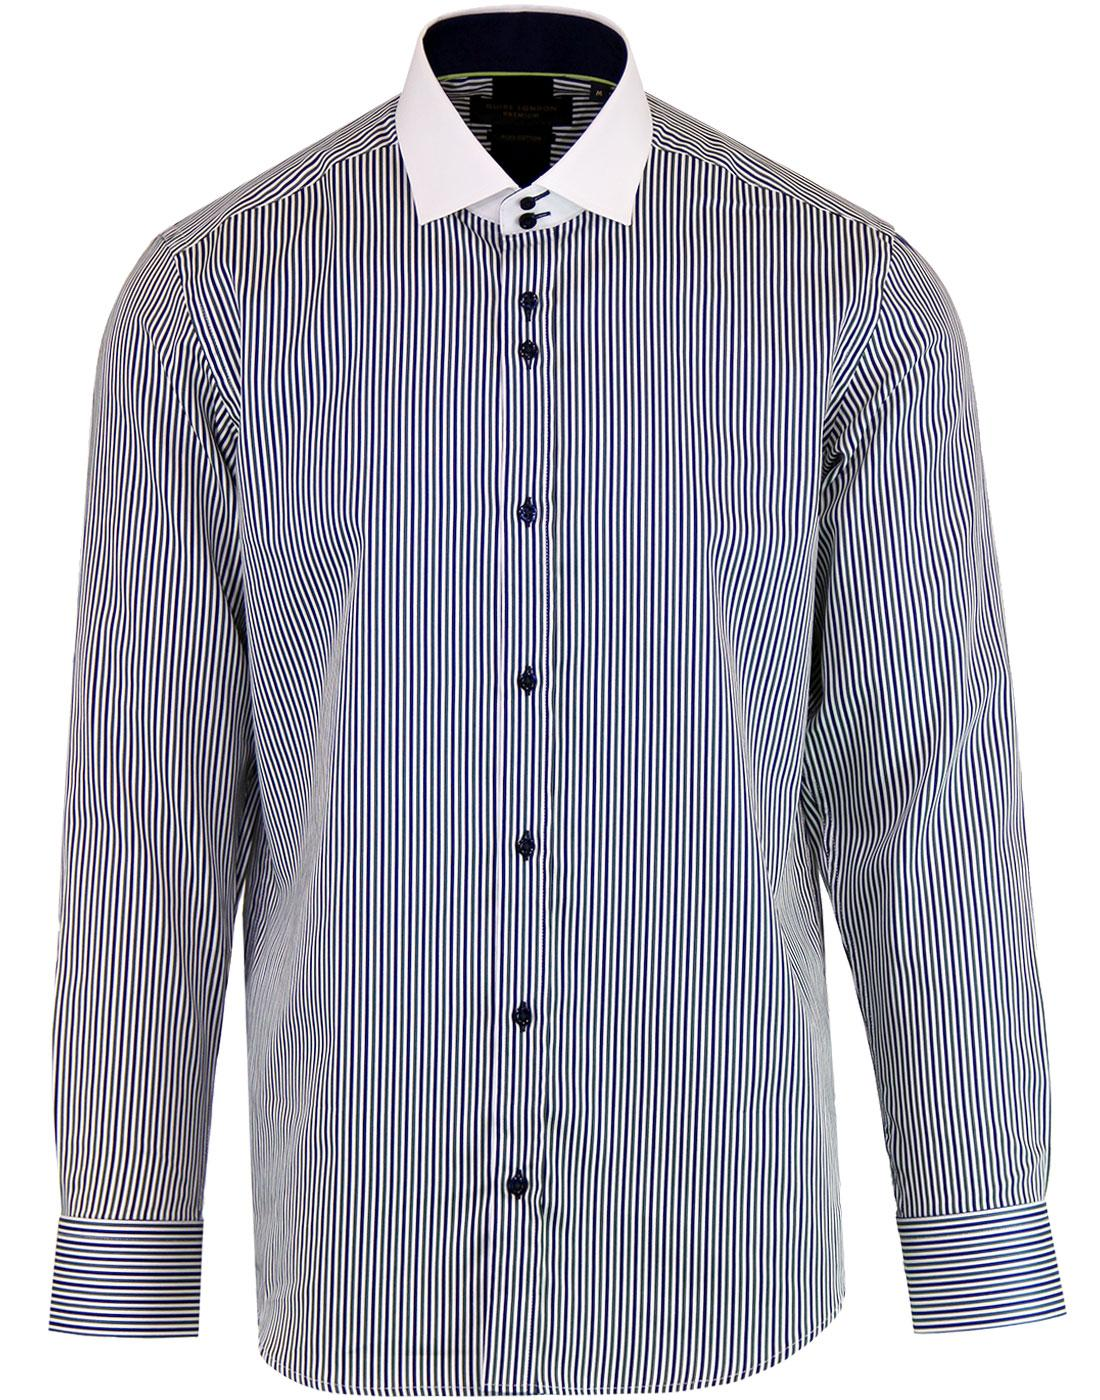 GUIDE LONDON Retro Contrast Collar Stripe Shirt G